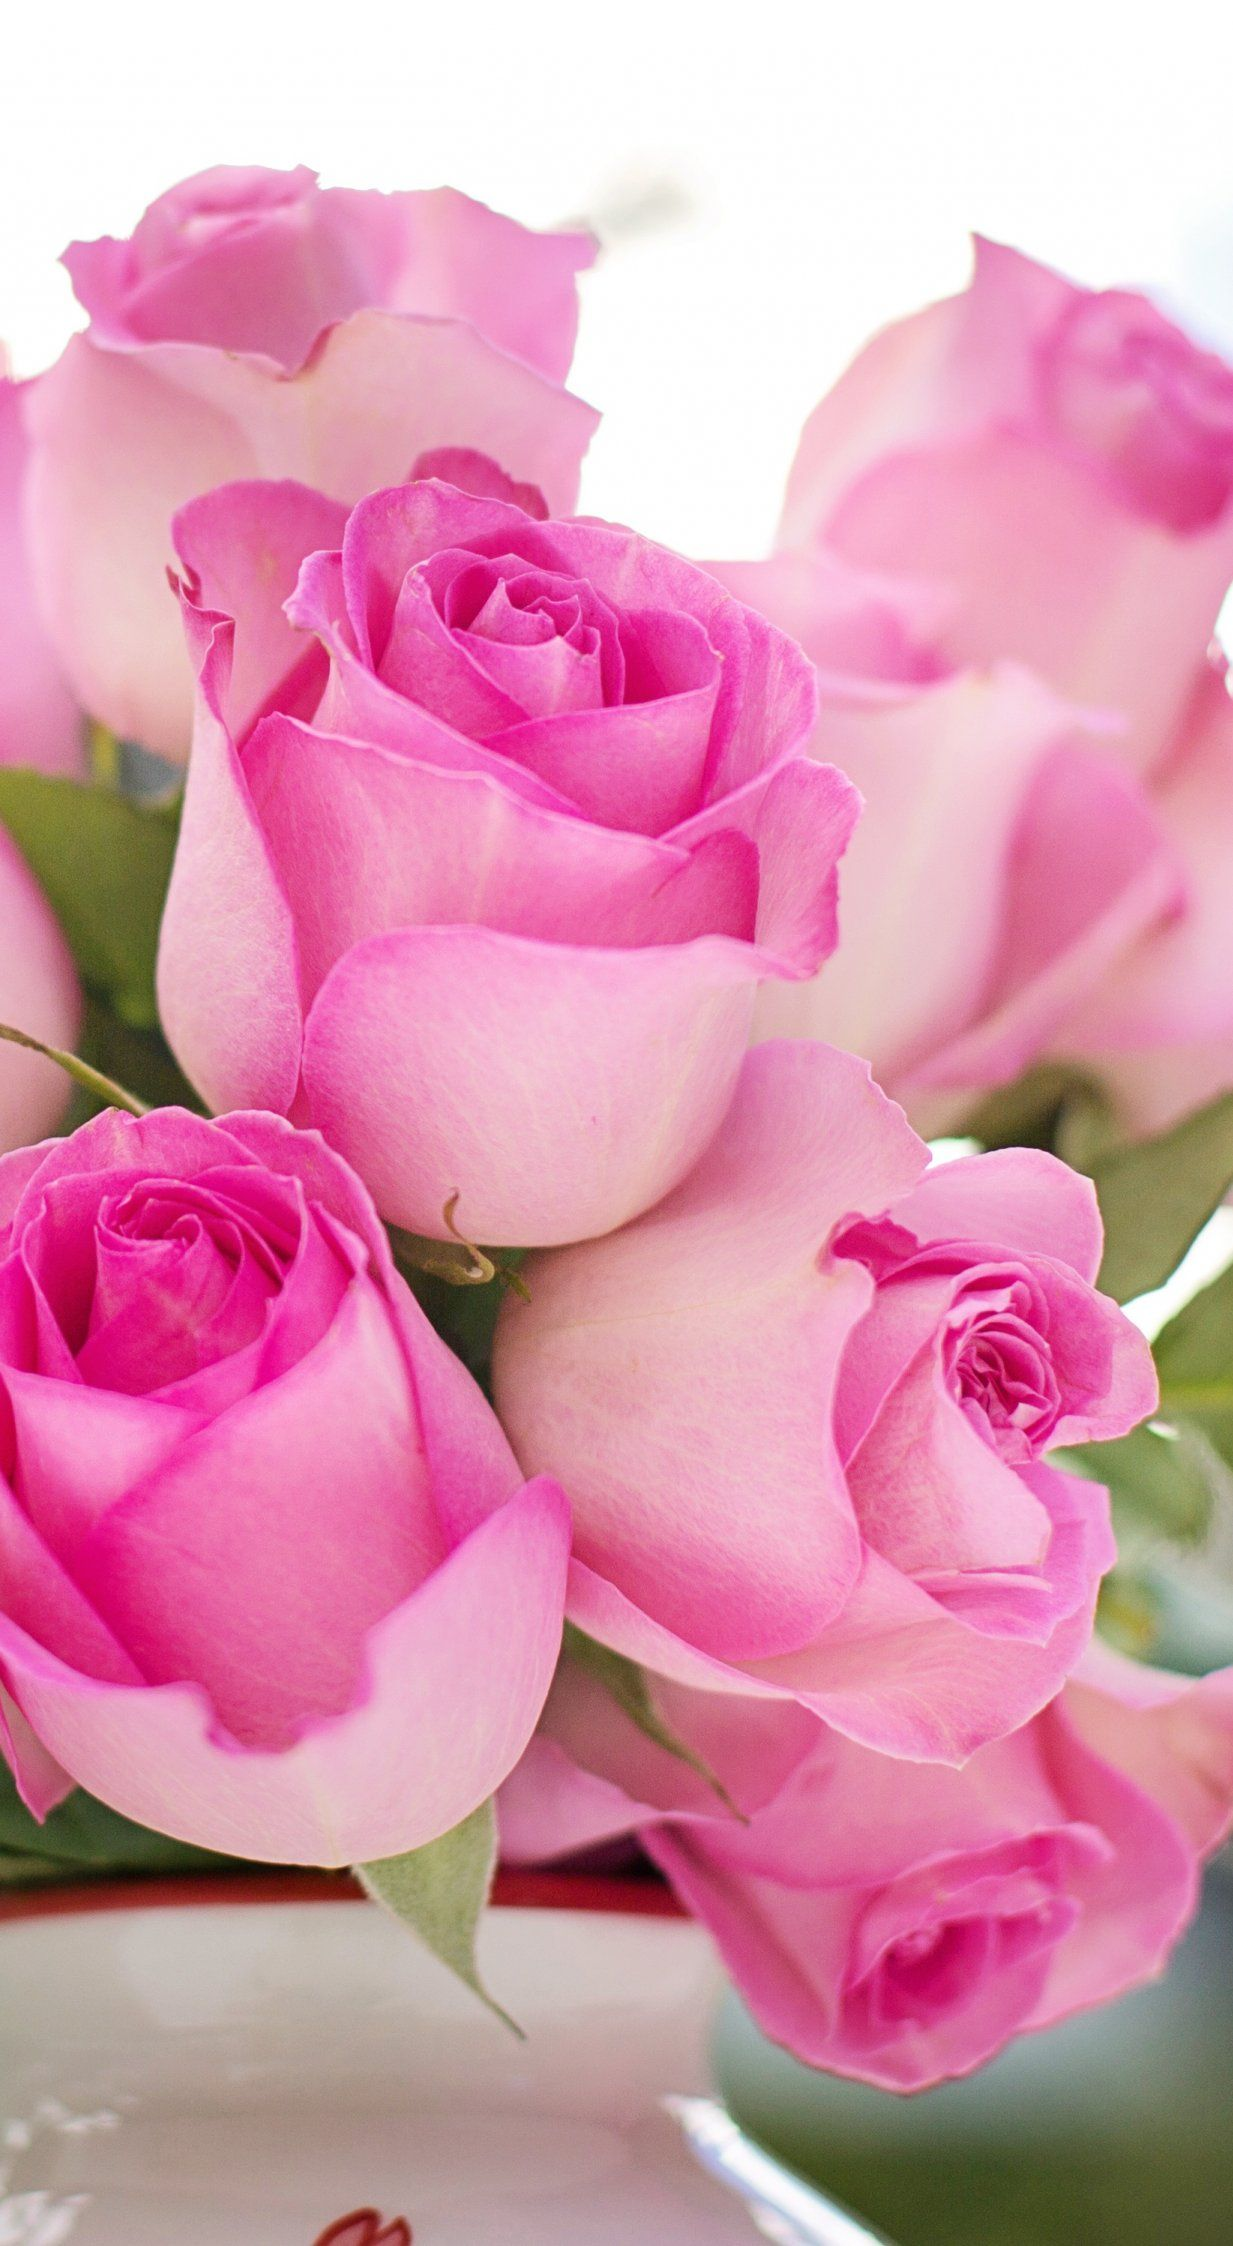 Pink Roses Flowers Romance Romantic Love Valentine Floral Flowers Beautiful Roses Beautiful Flowers